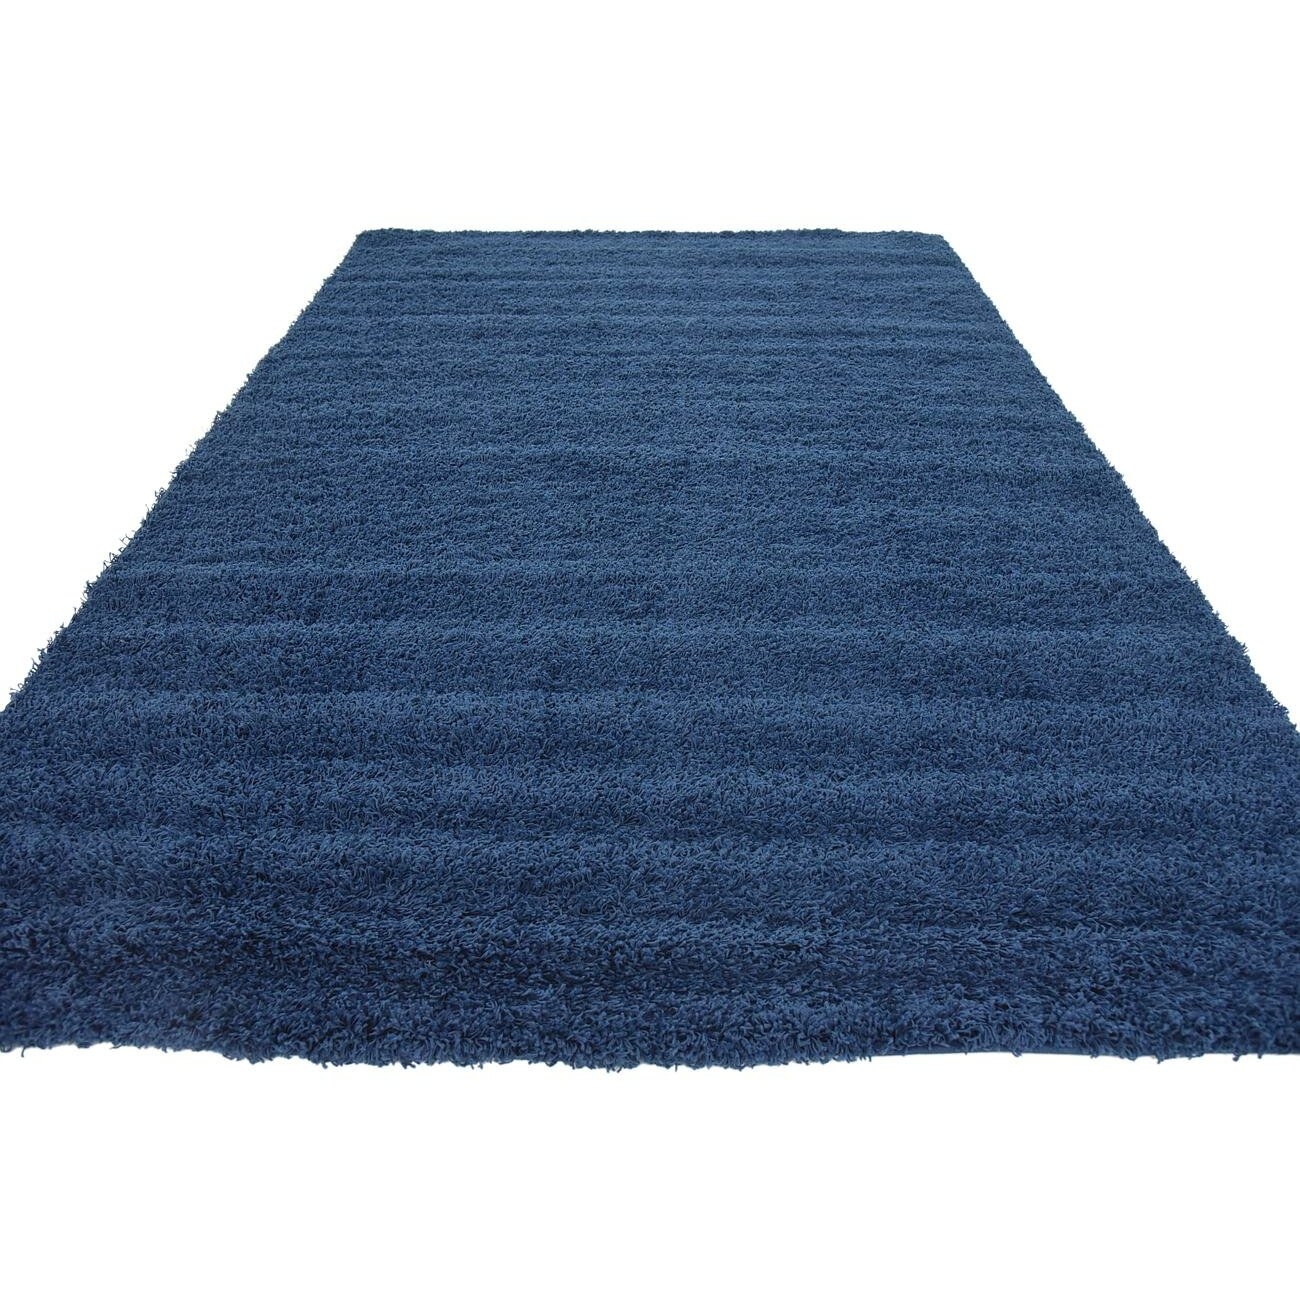 Basic Navy Blue Area Rug